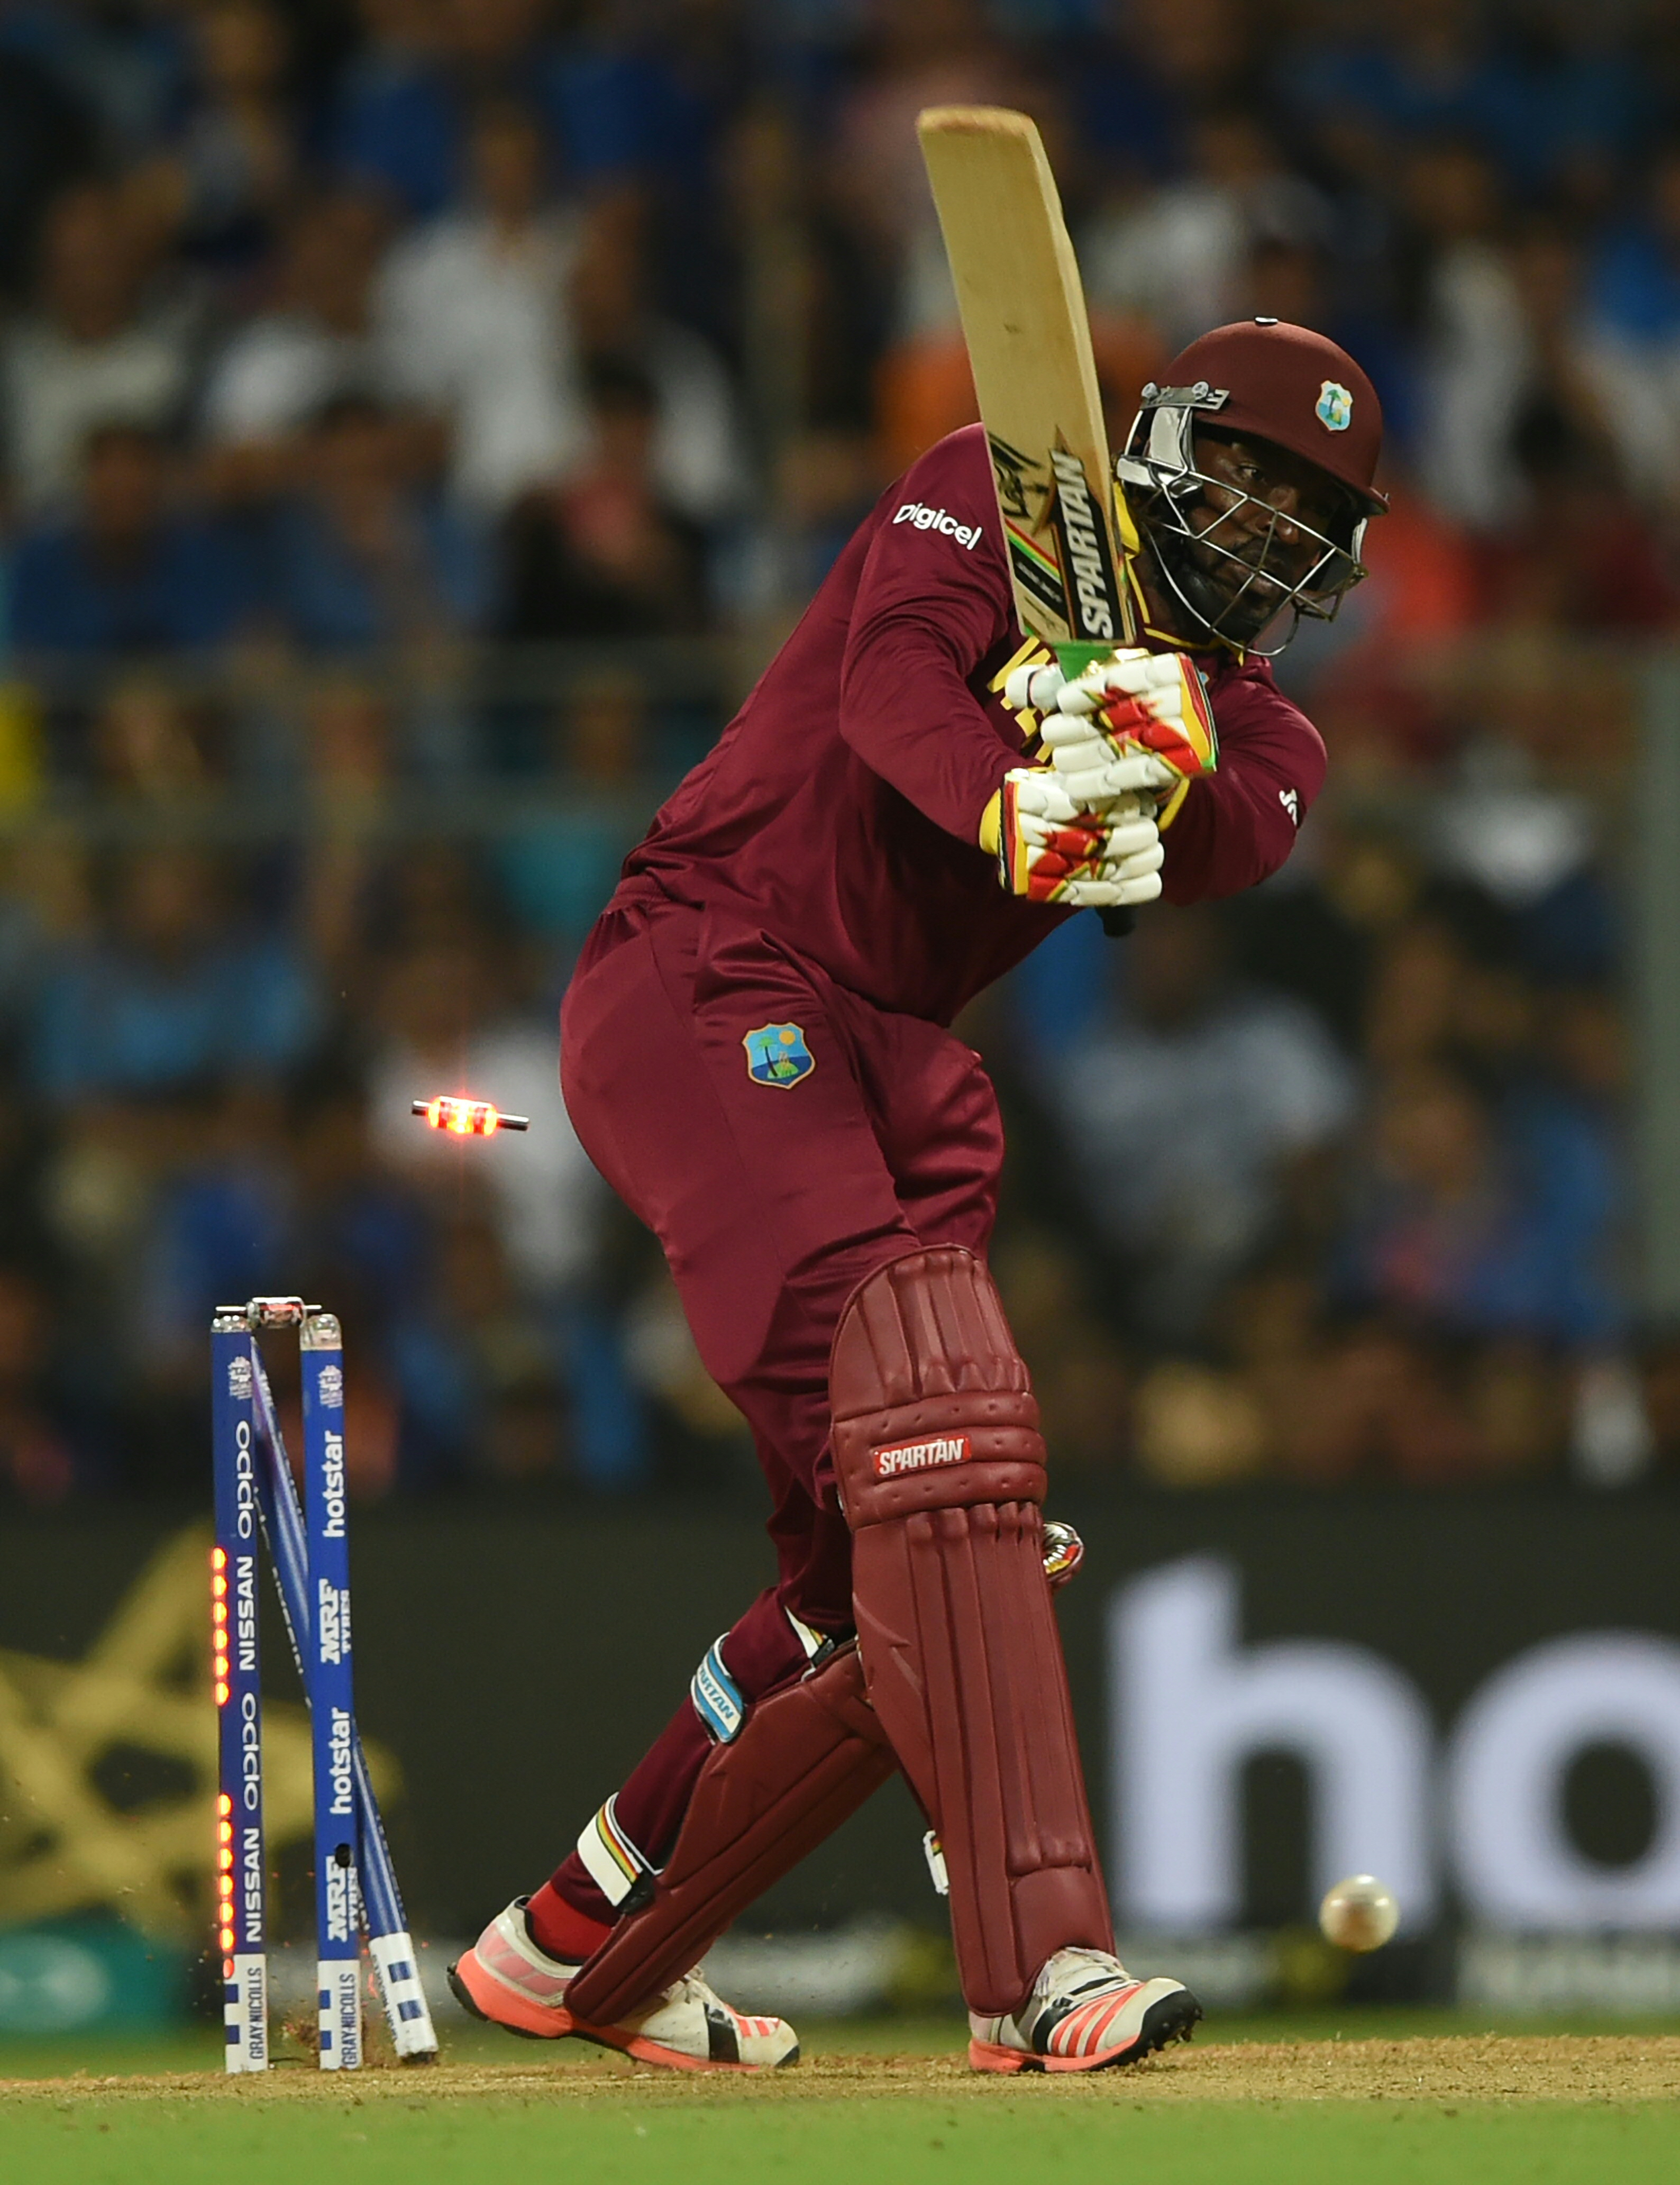 West Indies's Chris Gayle is bowled out during the World T20 men's semi-final match between India and West Indies at The Wankhede Cricket Stadium in Mumbai on March 31, 2016. / AFP / INDRANIL MUKHERJEE